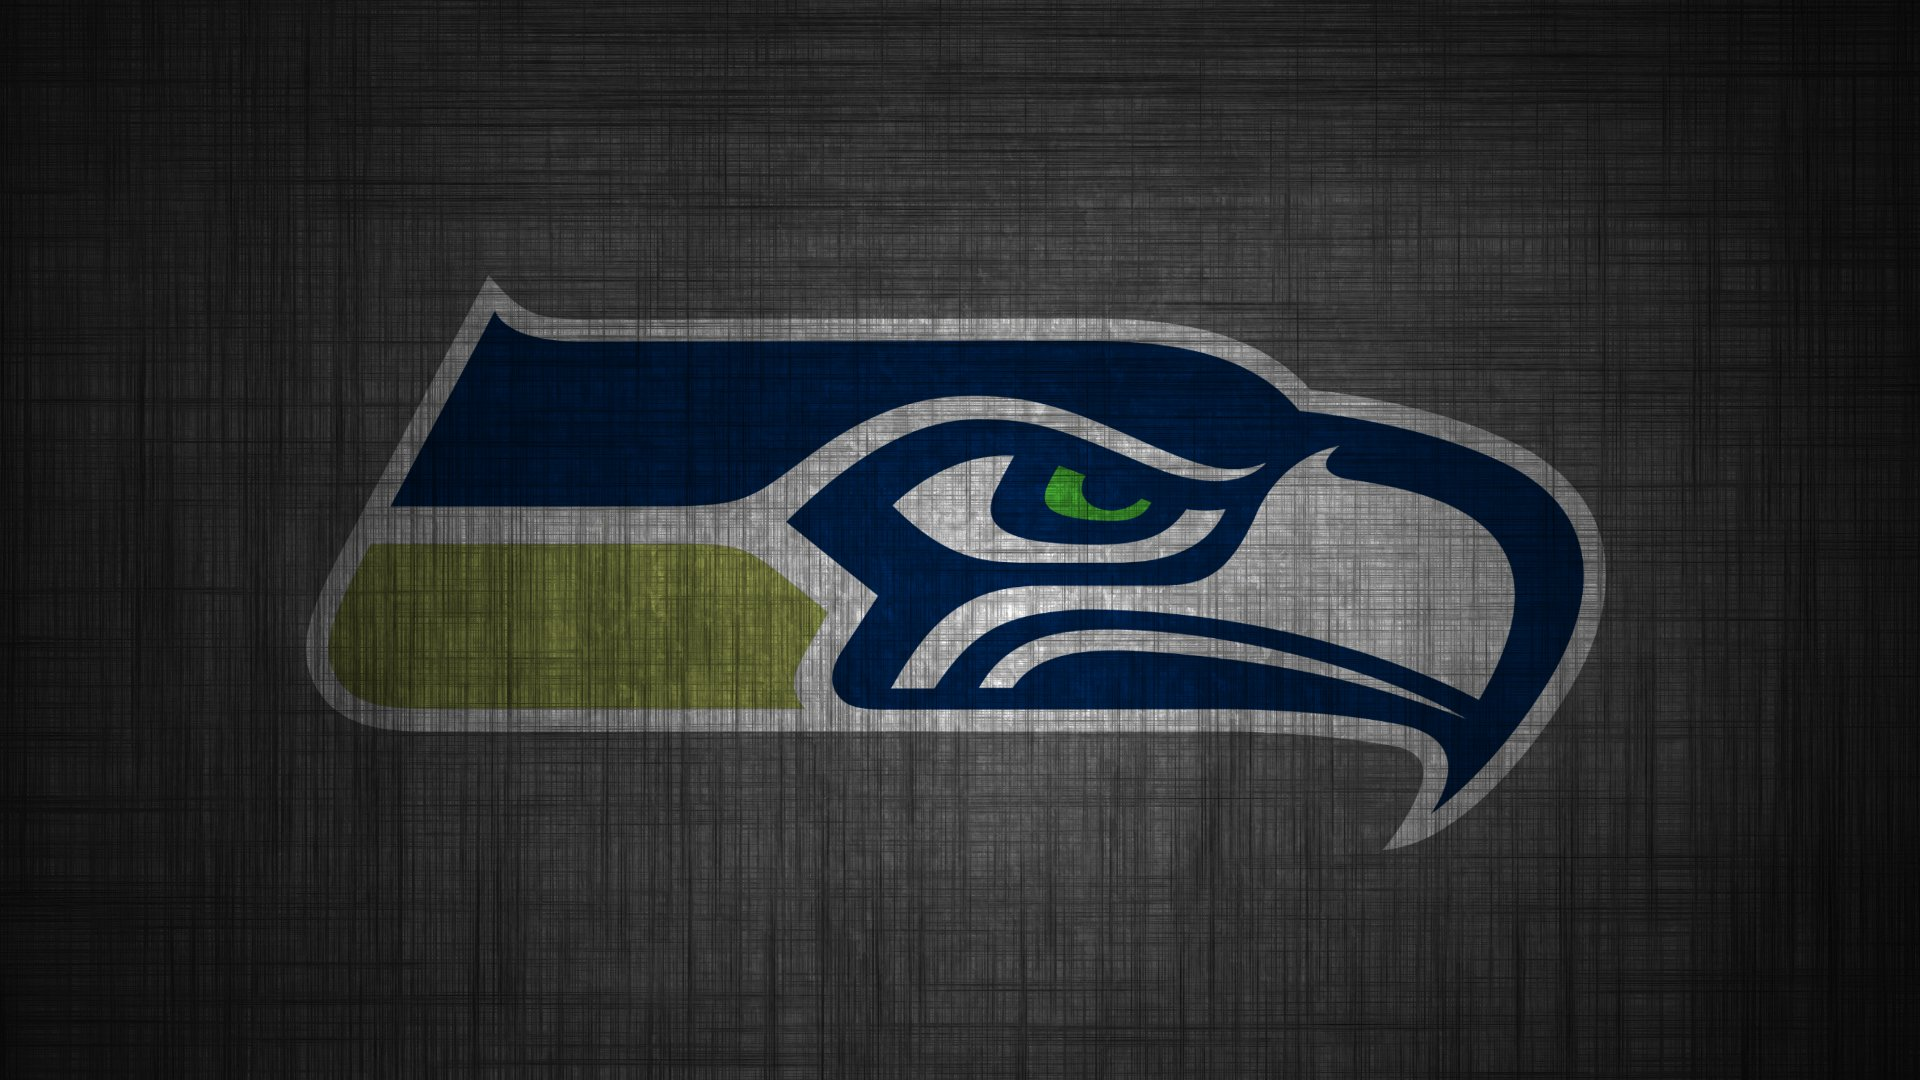 Seahawks Wallpaper Posted By Zoey Johnson